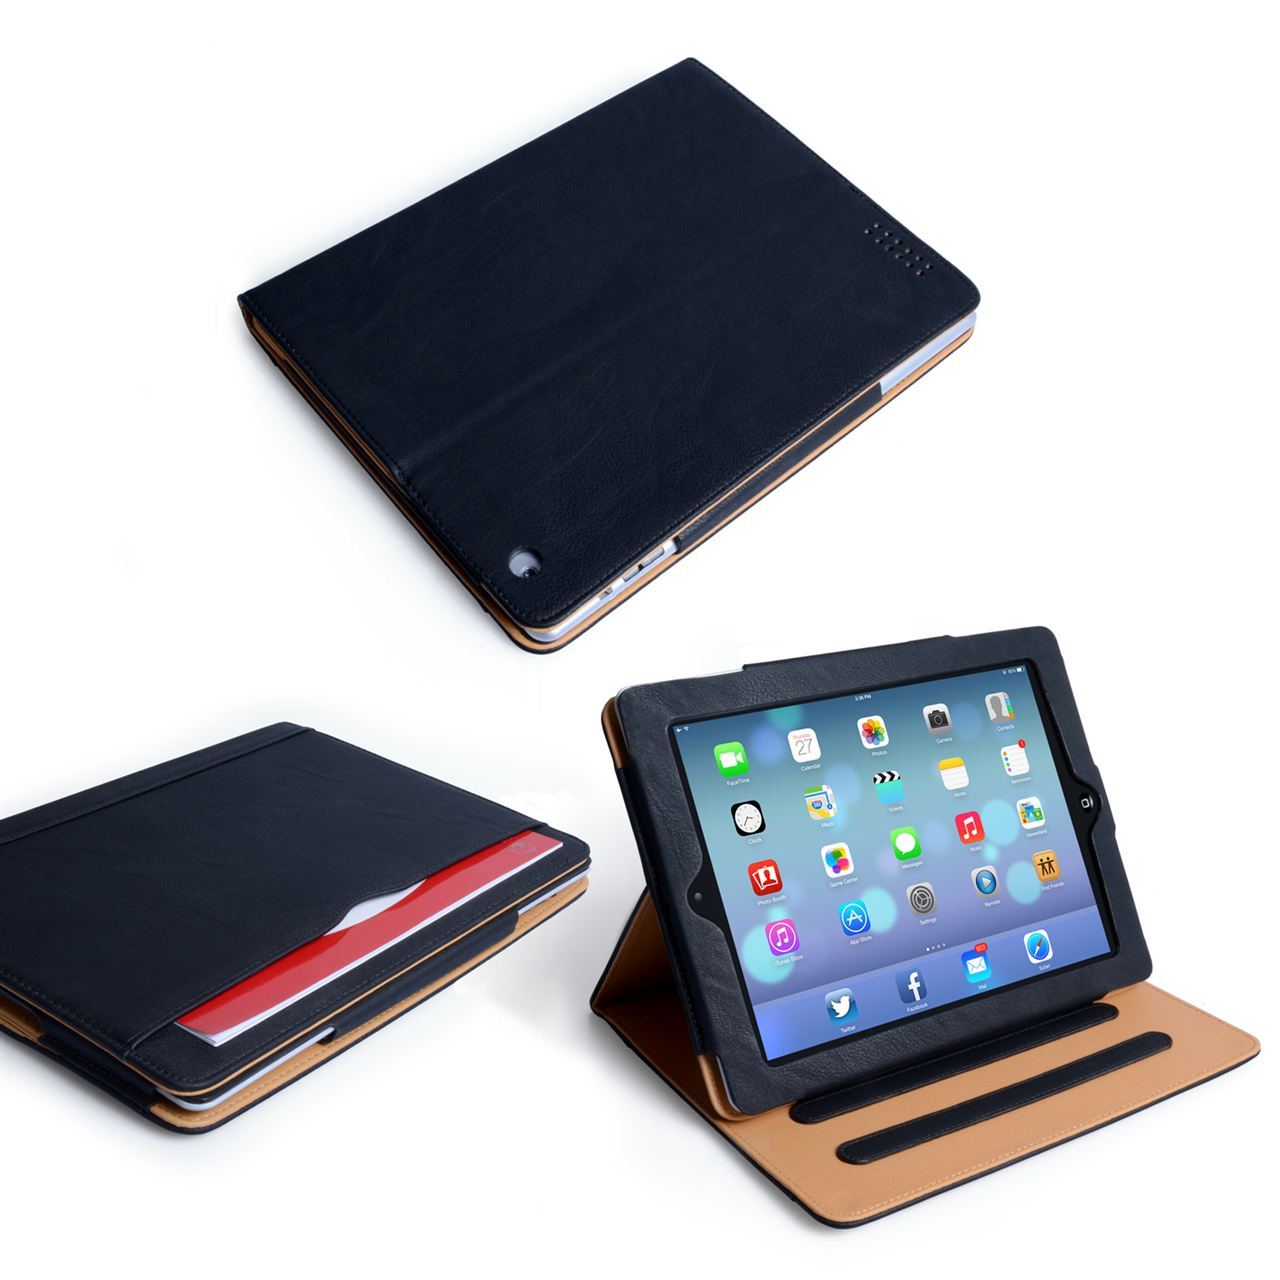 Caseflex iPad Air Textured Faux Leather Stand Case - Black and Tan